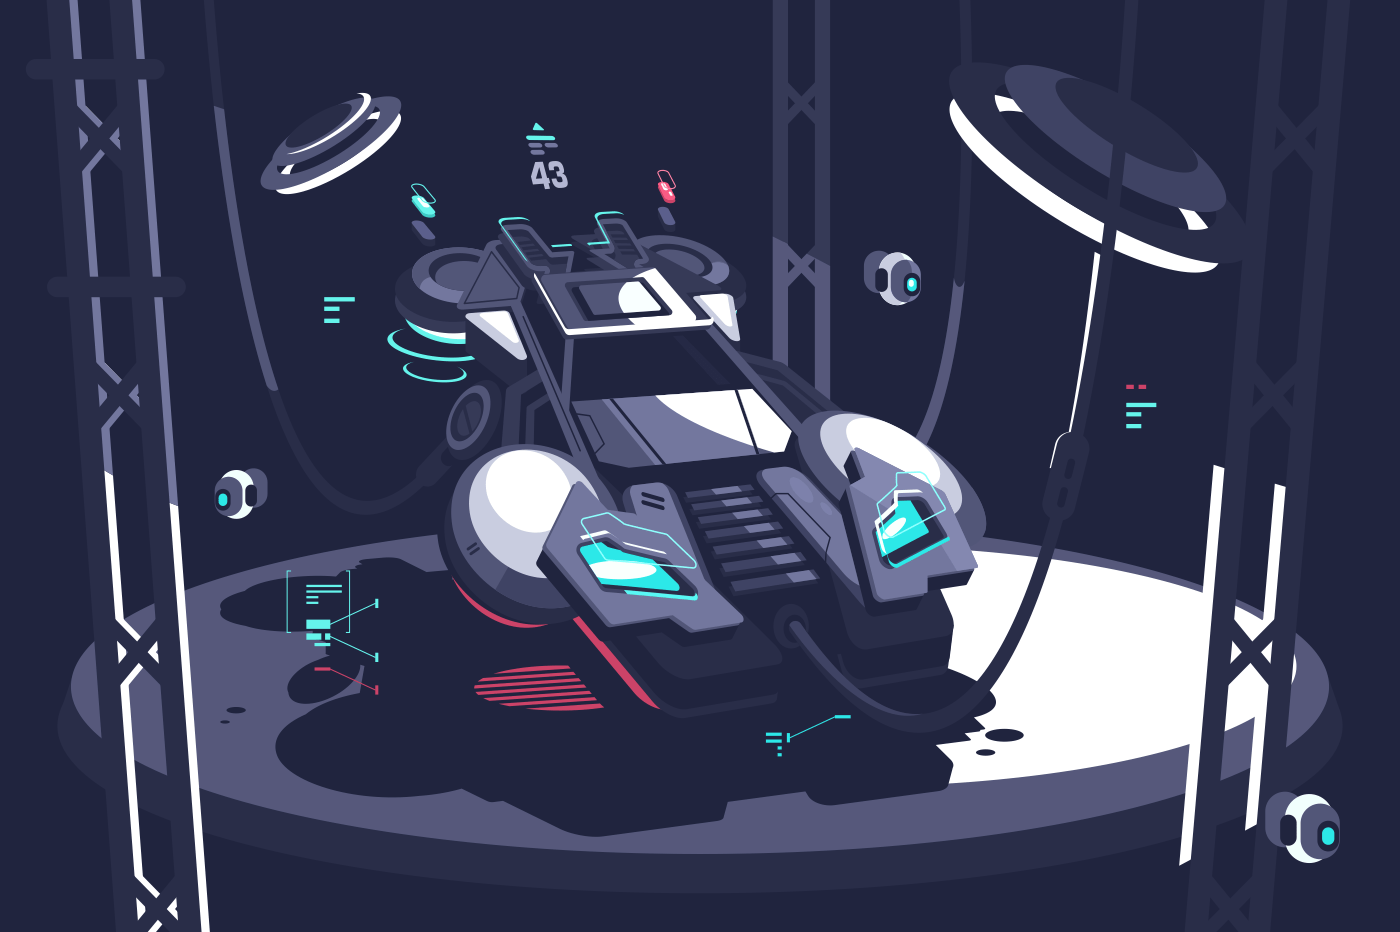 Flying racing car of future for sports competition. Vector illustration